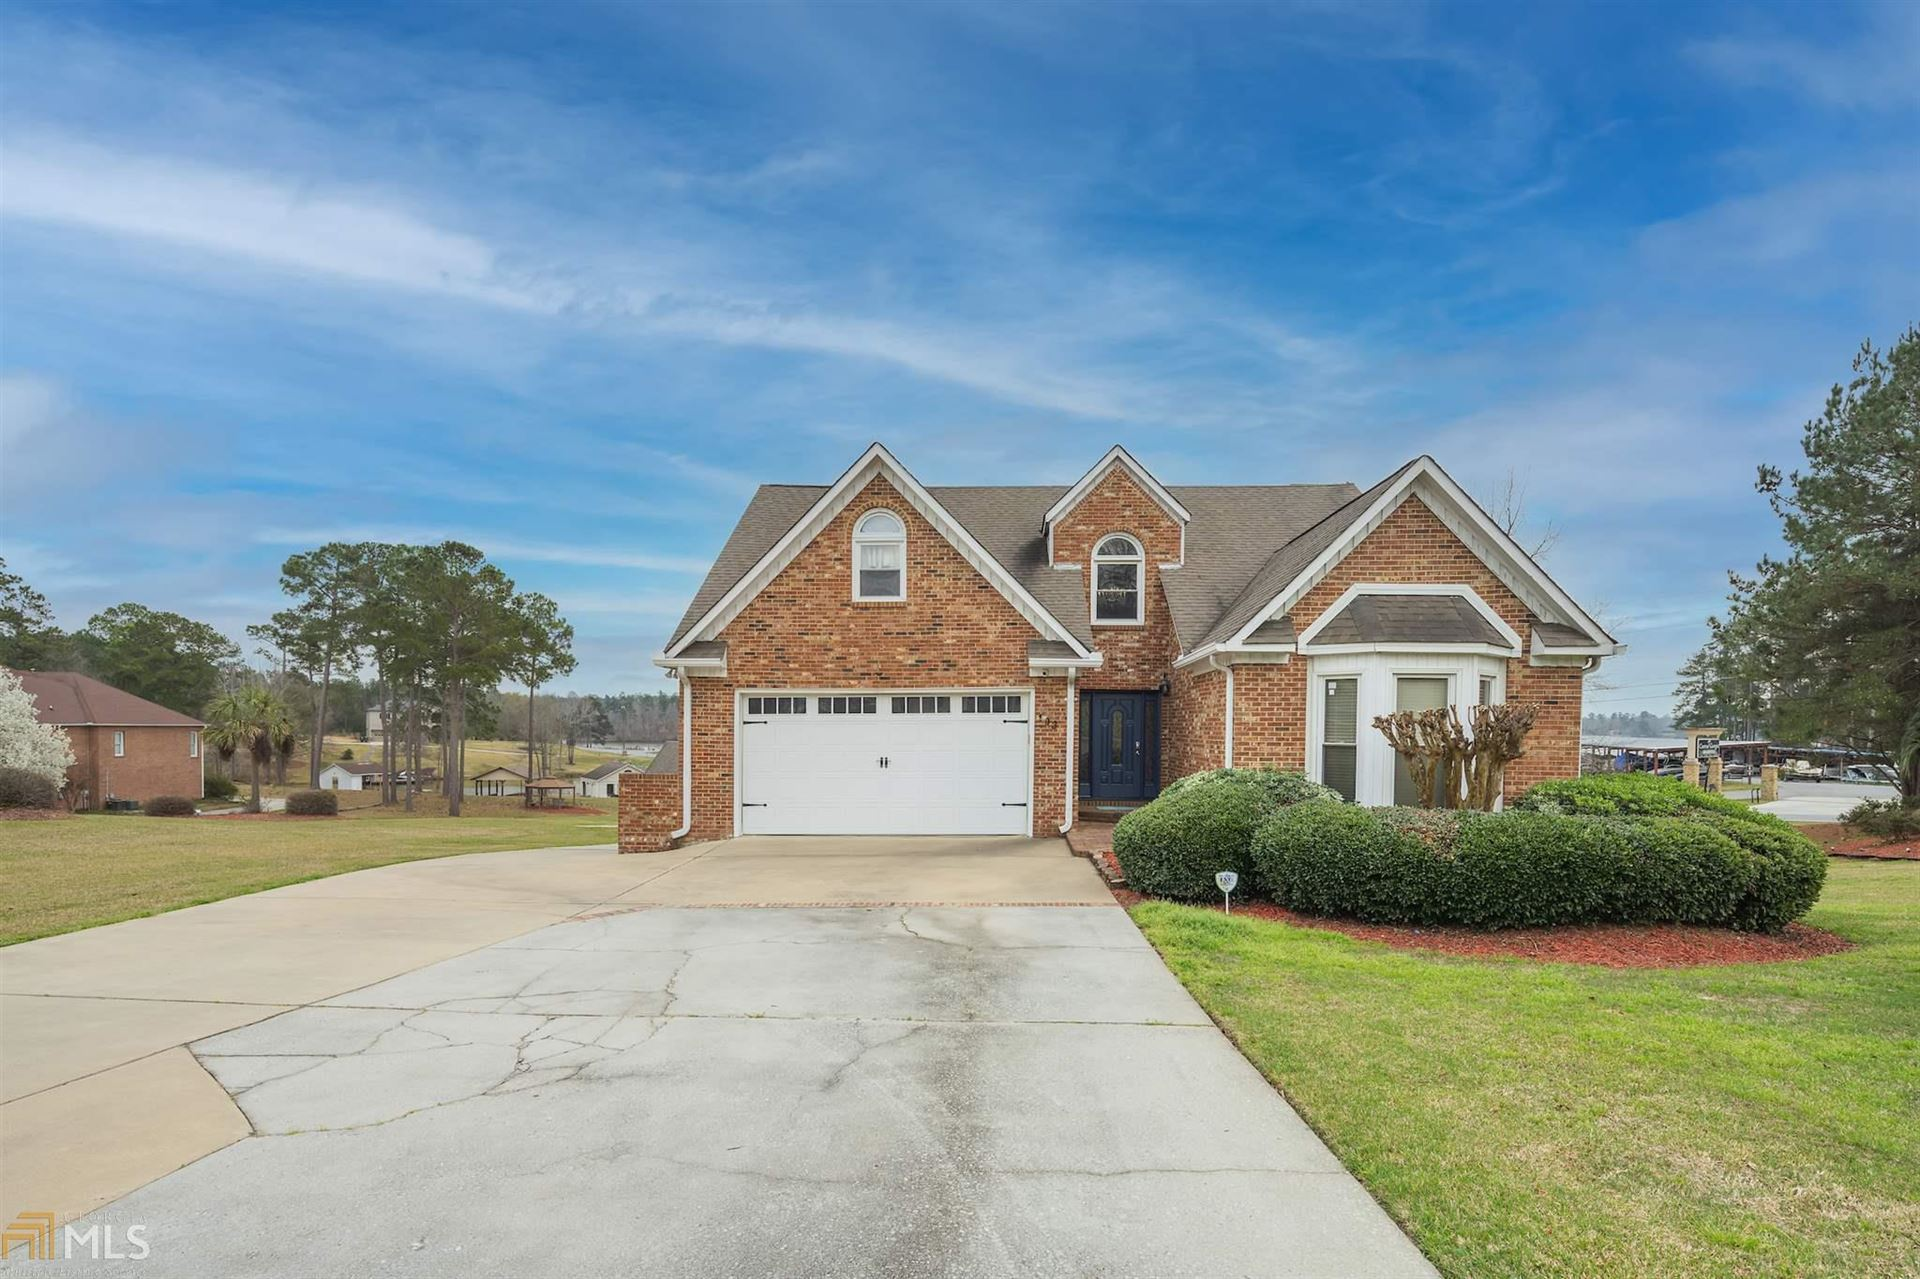 103 Cordell Ct, Macon, GA 31220 - MLS#: 8946408